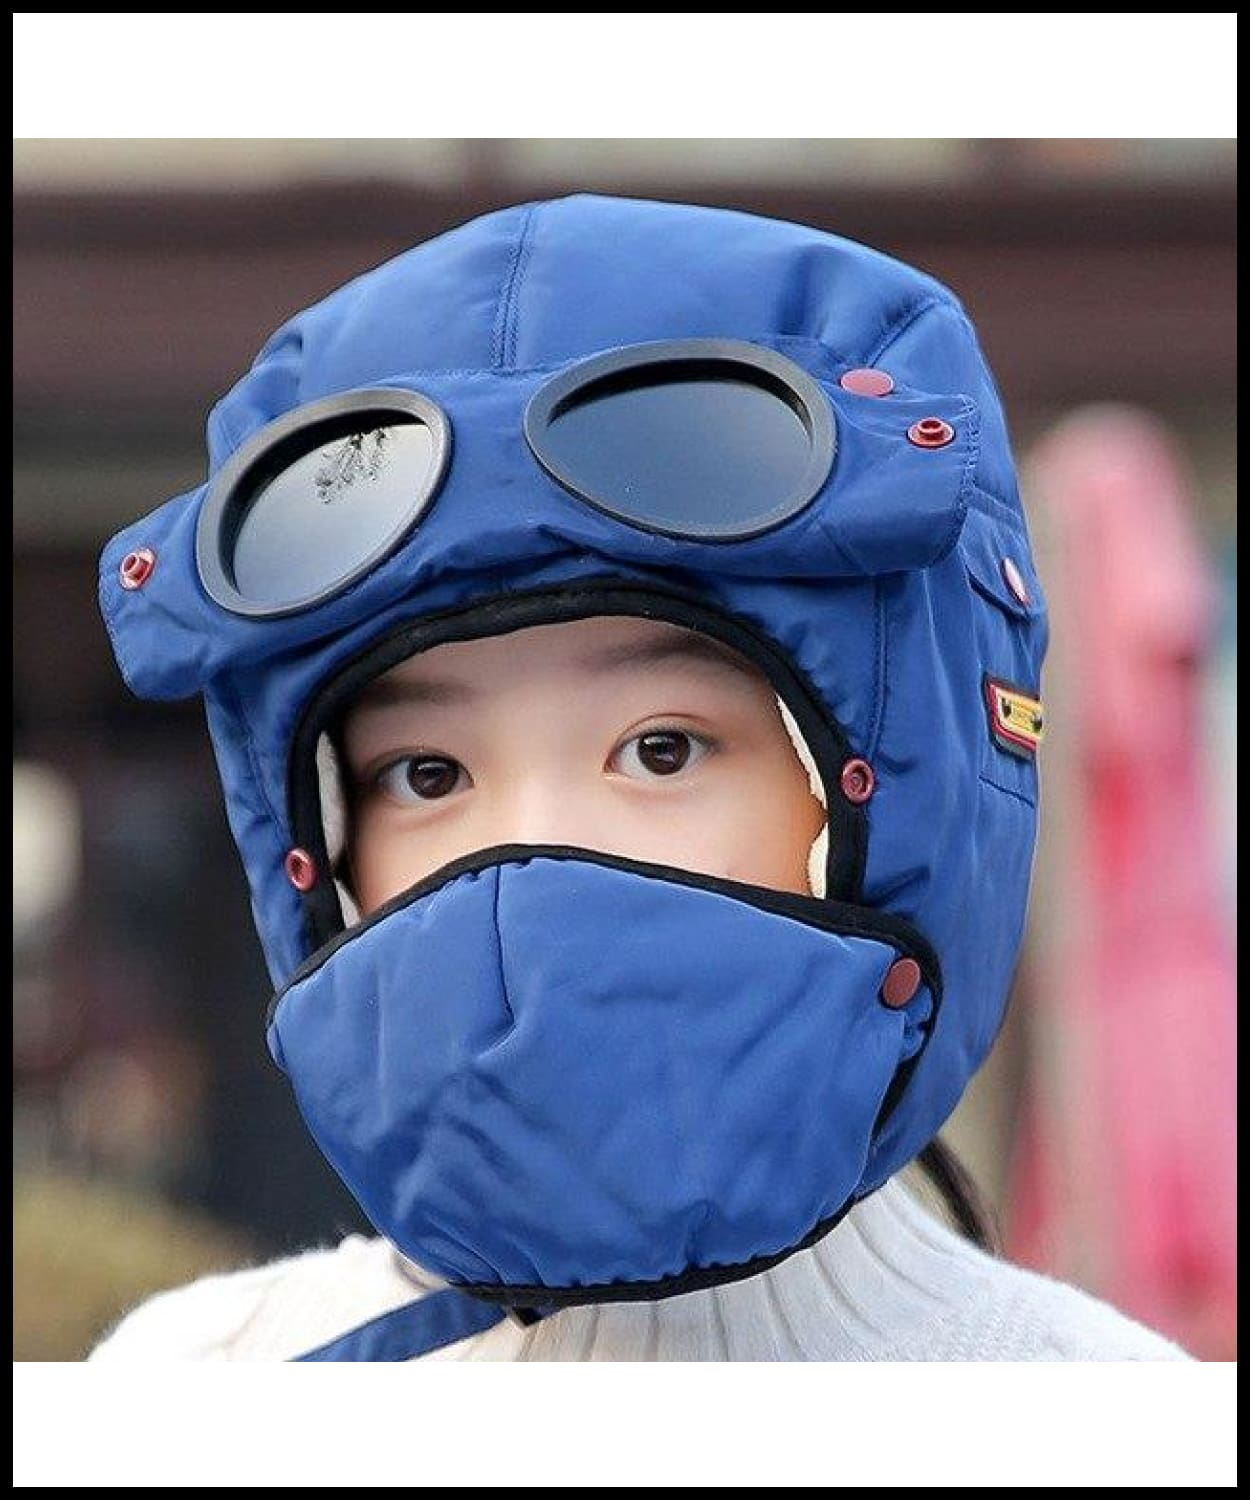 60faa39e56a ... Bomber Hats Women Men Child Winter Windproof Ski Cap With Ear Flaps And  Mask Pilot Goggles ...